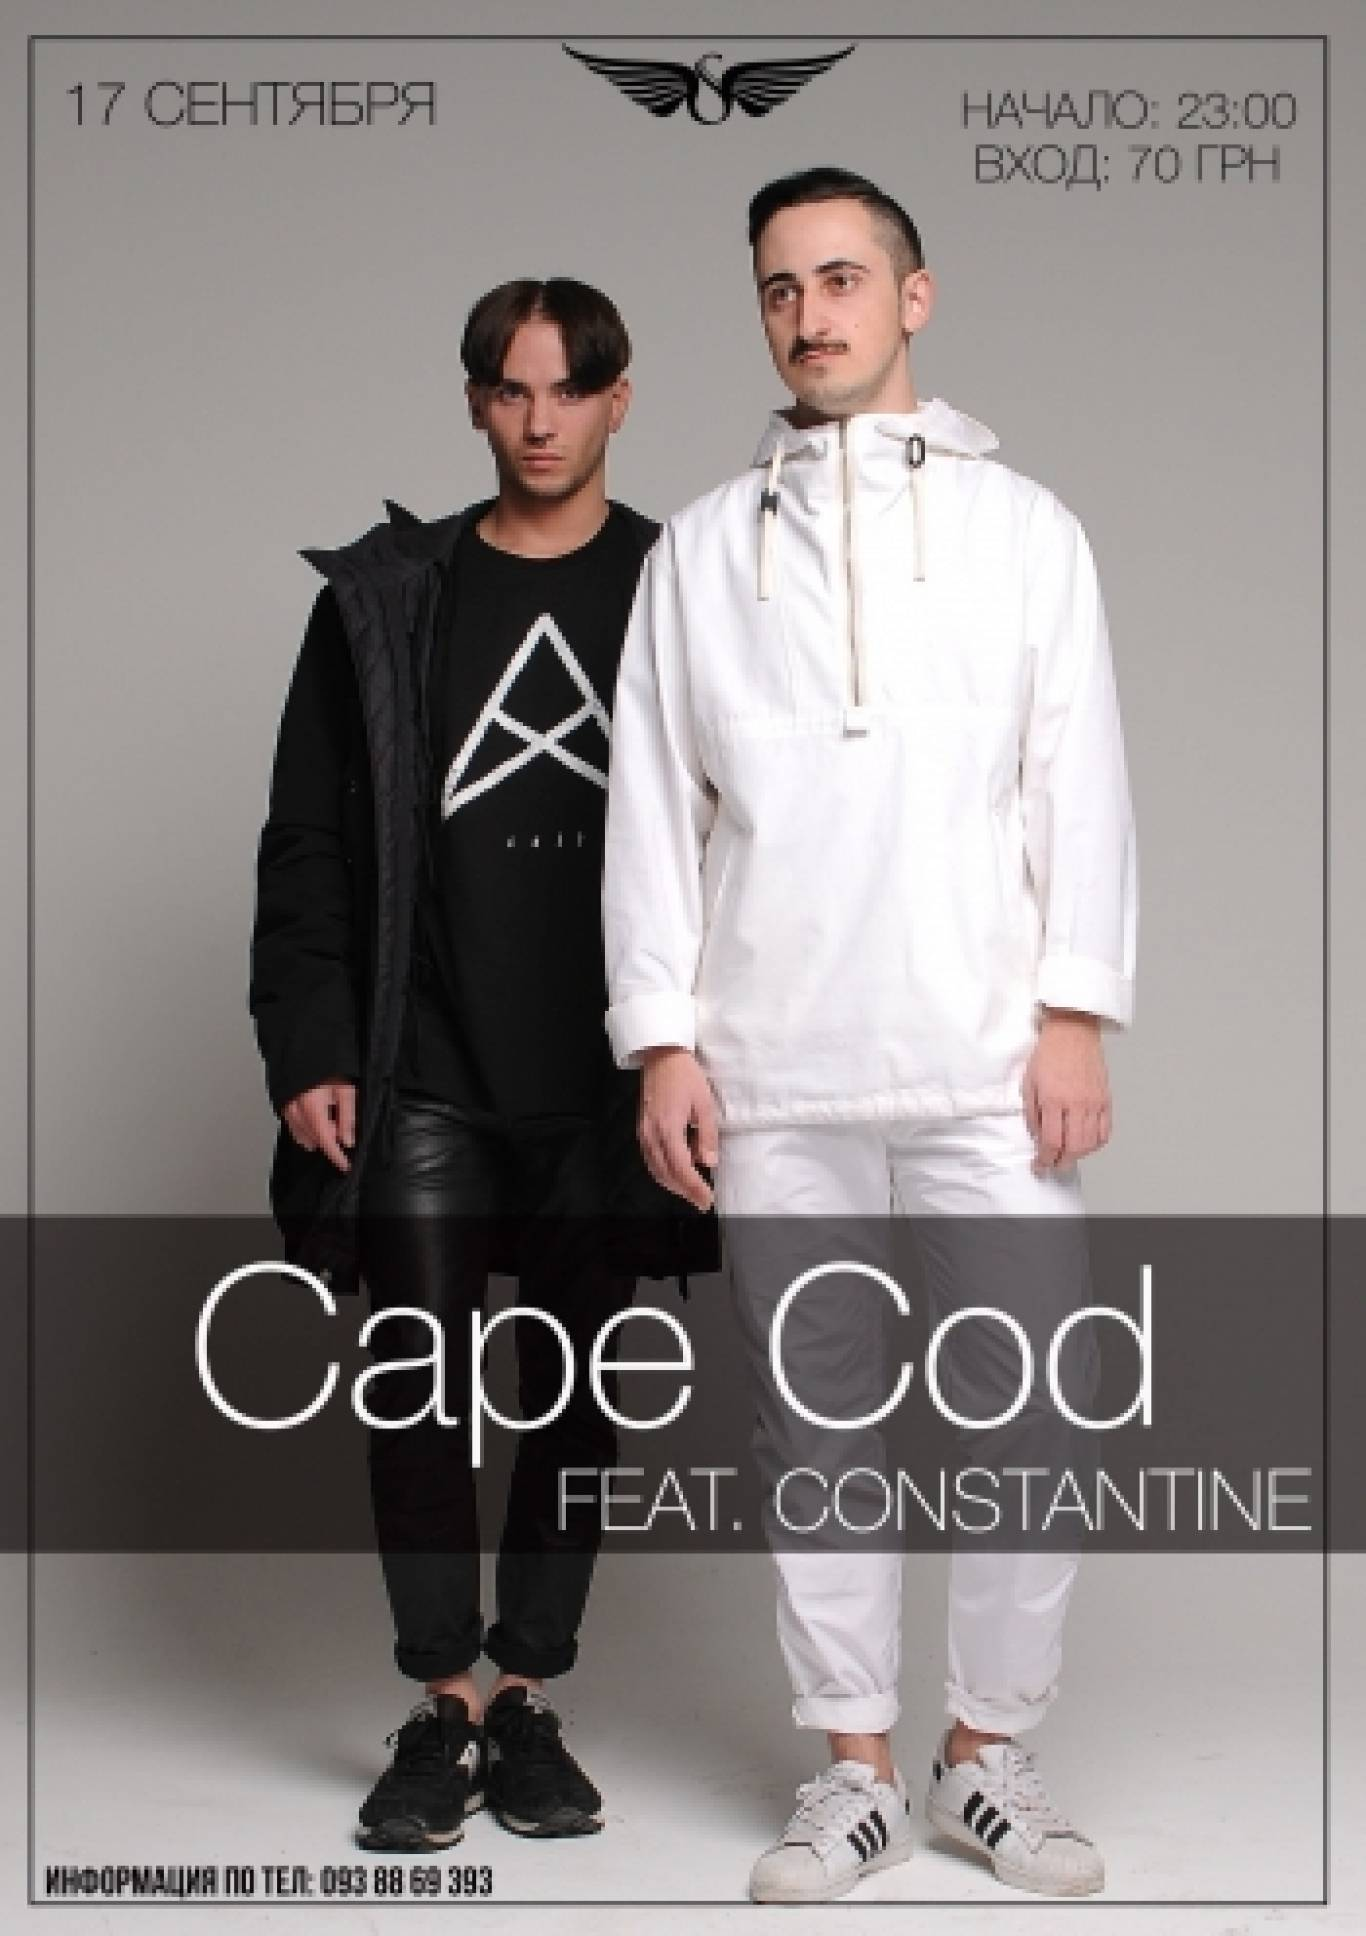 Cape Cod feat. Constantine